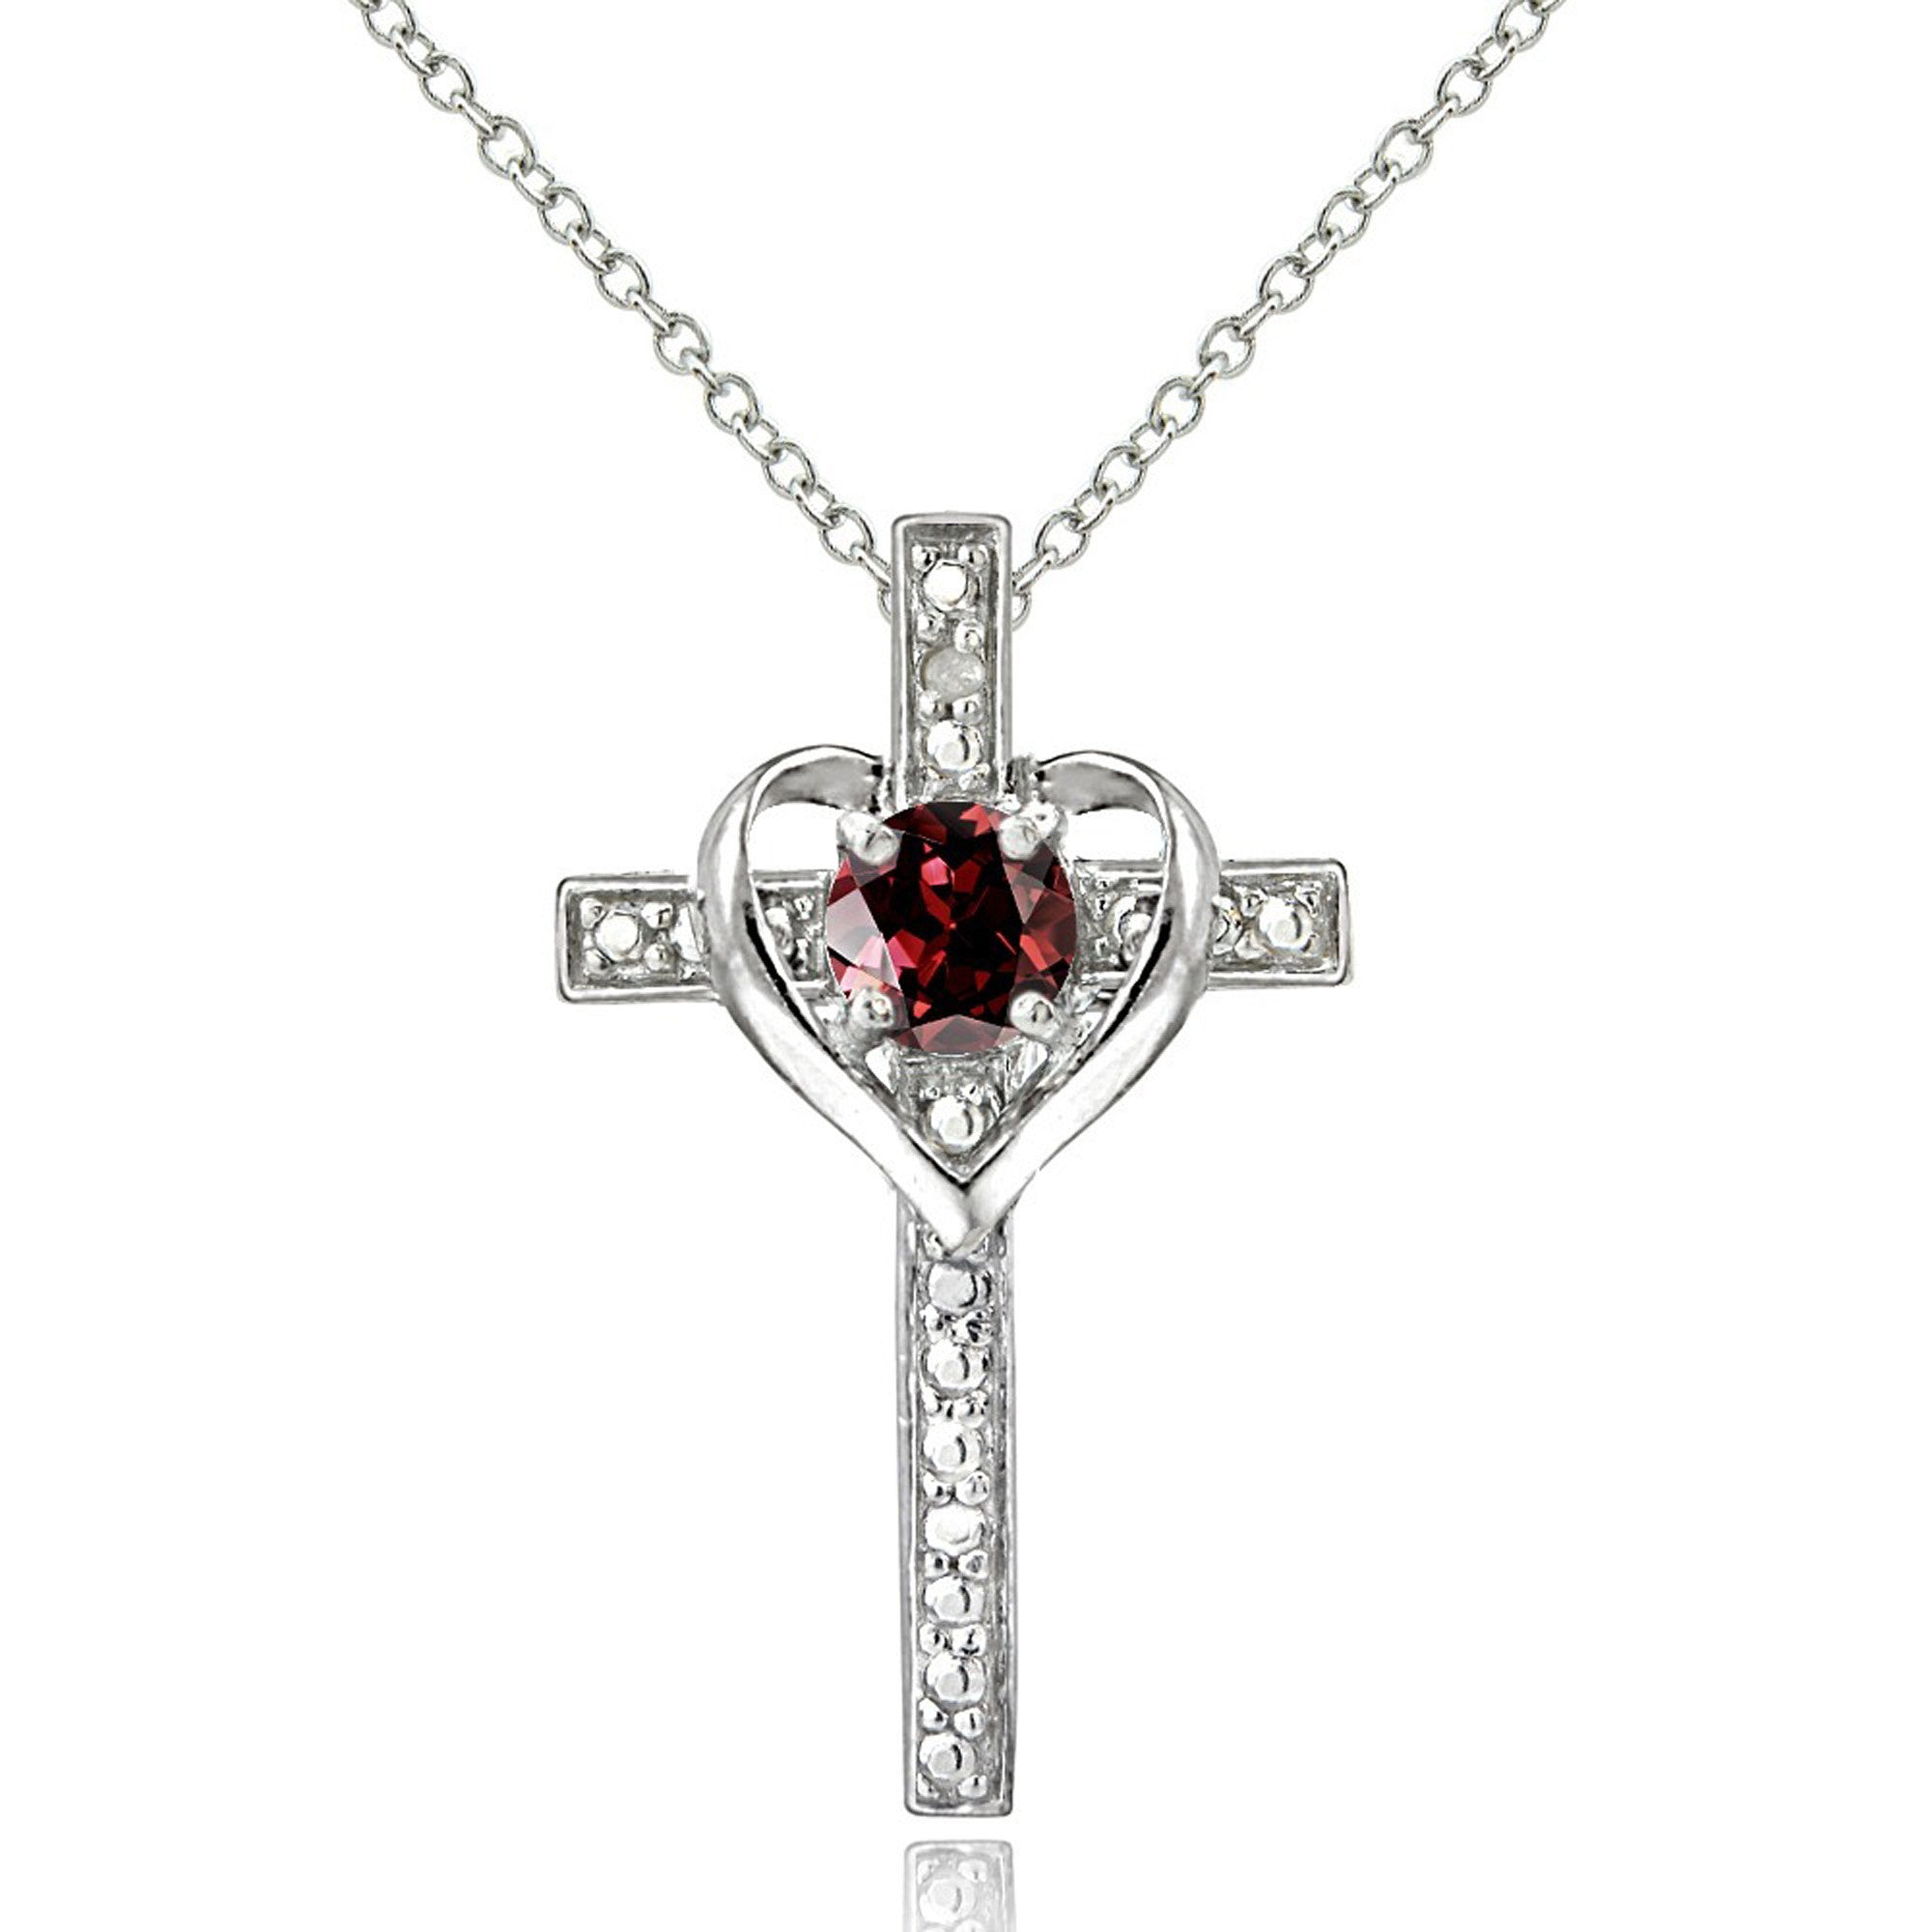 Diamond Accented Sterling Silver Cross Necklace - Silver / Garnet